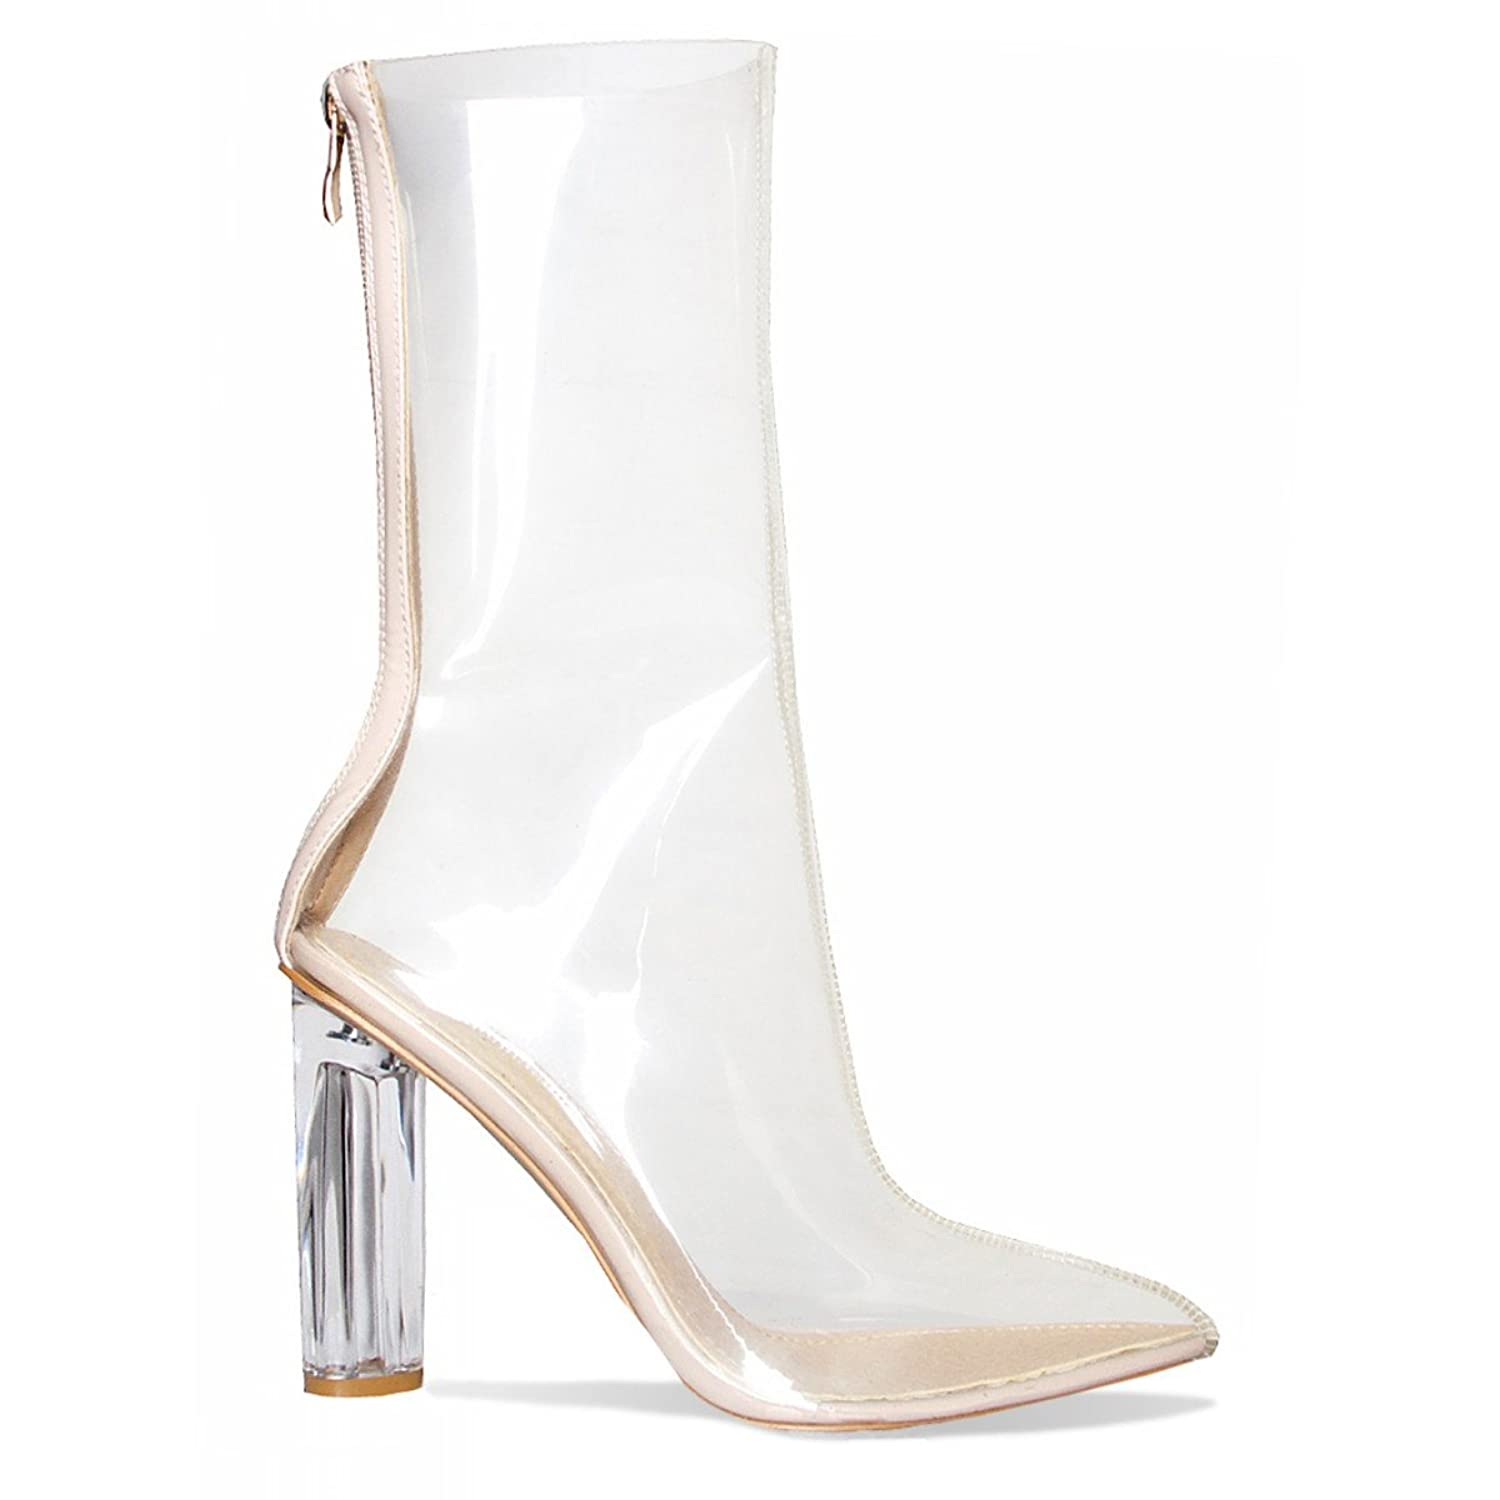 Themost Womens Transparent Closed Pointy Toe Chunky Heels Designer Ankle Boots Large Size B079JP4RNK 14 B(M) US